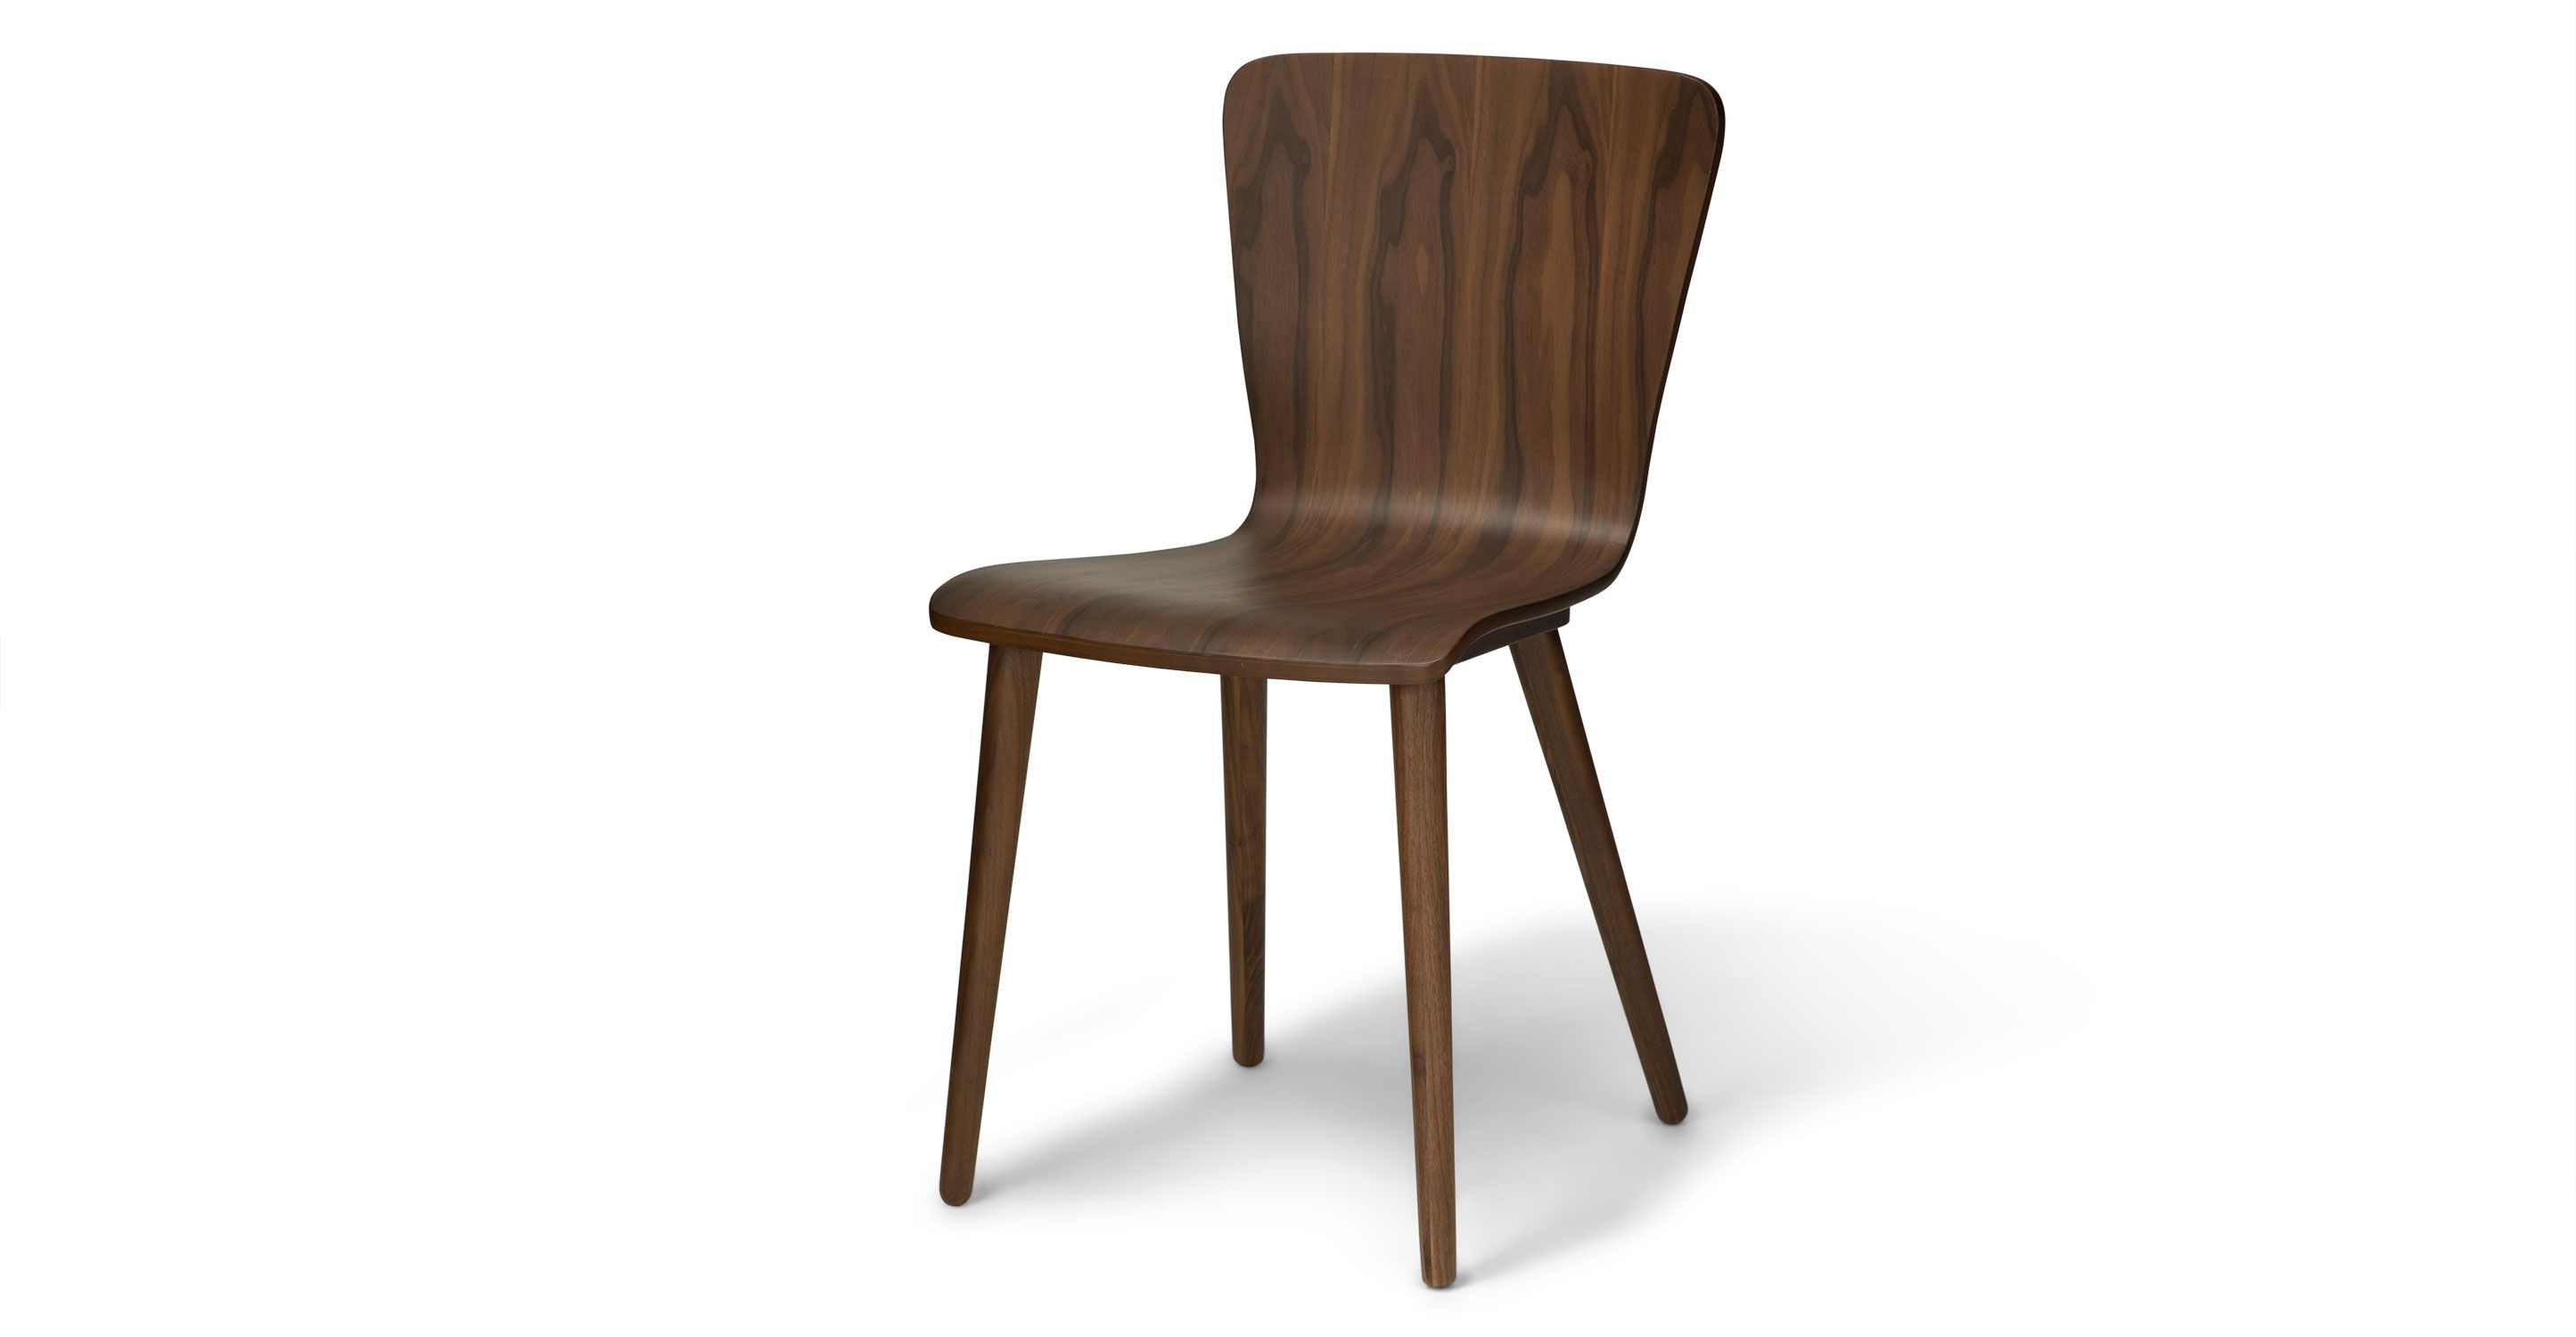 2 X Dining Chair In Walnut Wood | Article Sede Mid Century Modern Furniture